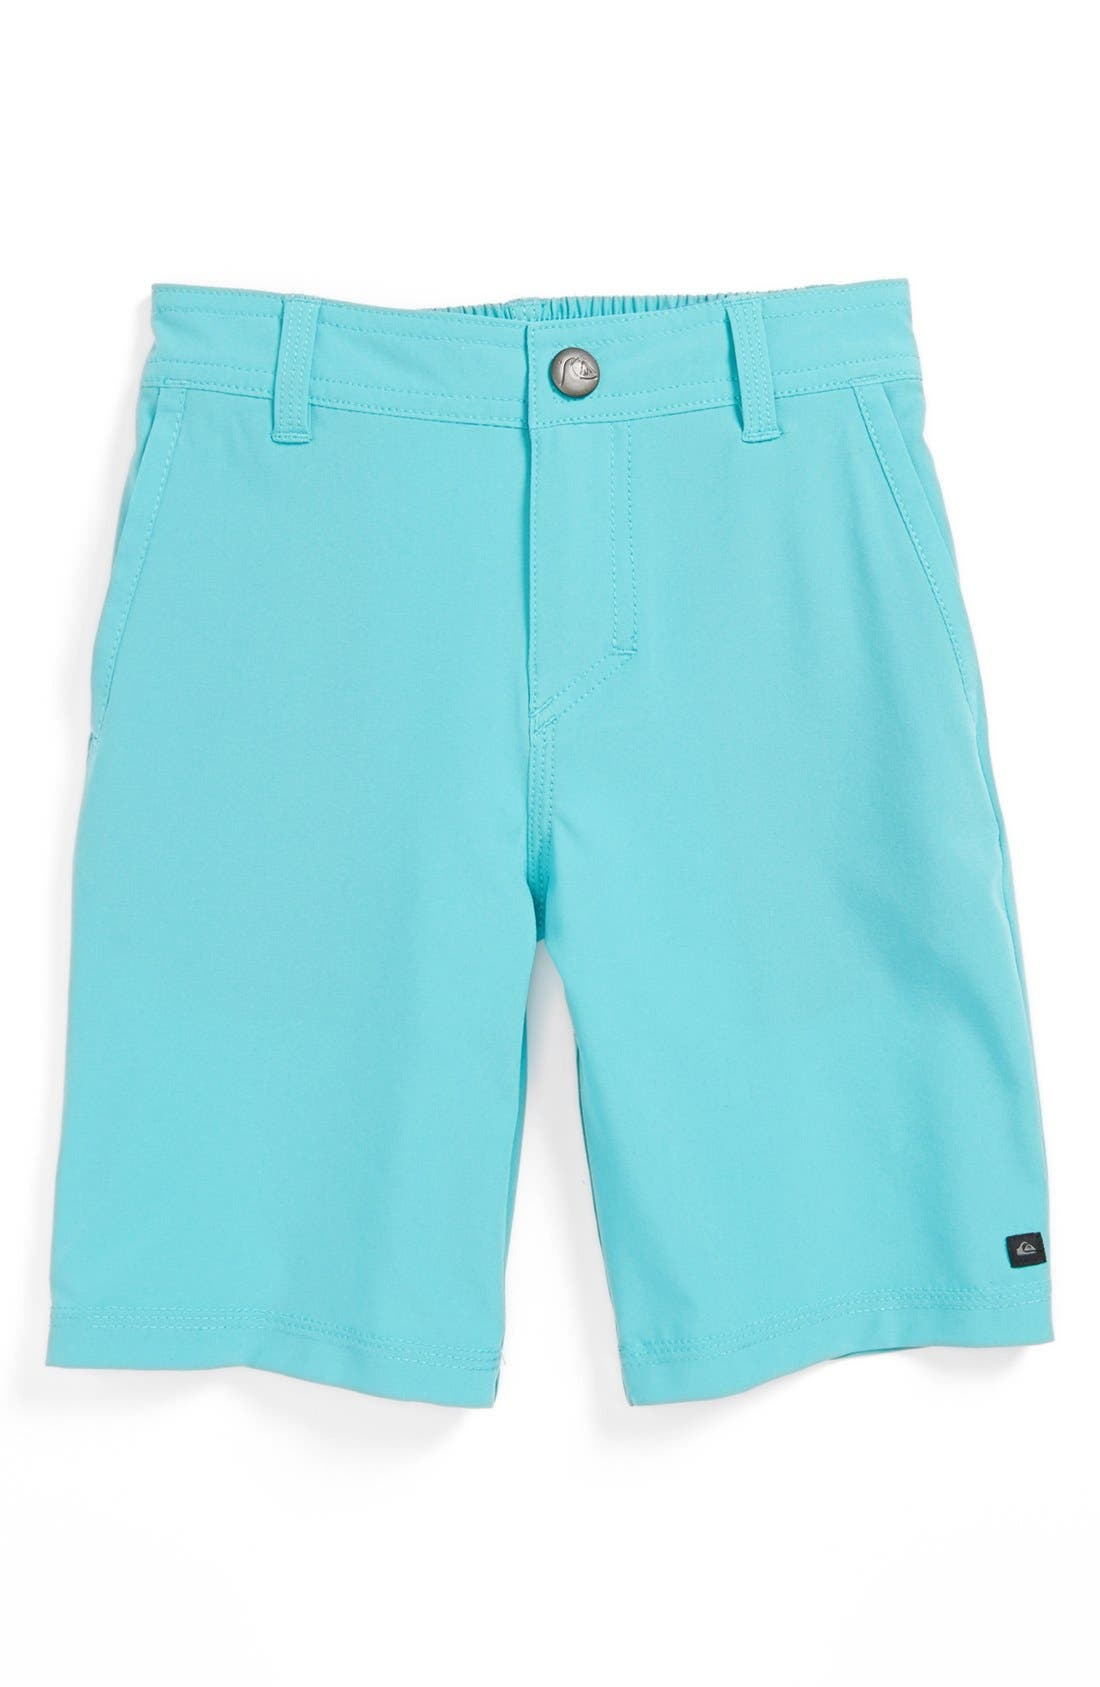 Main Image - Quiksilver 'F.A.A.' Board Shorts (Little Boys)